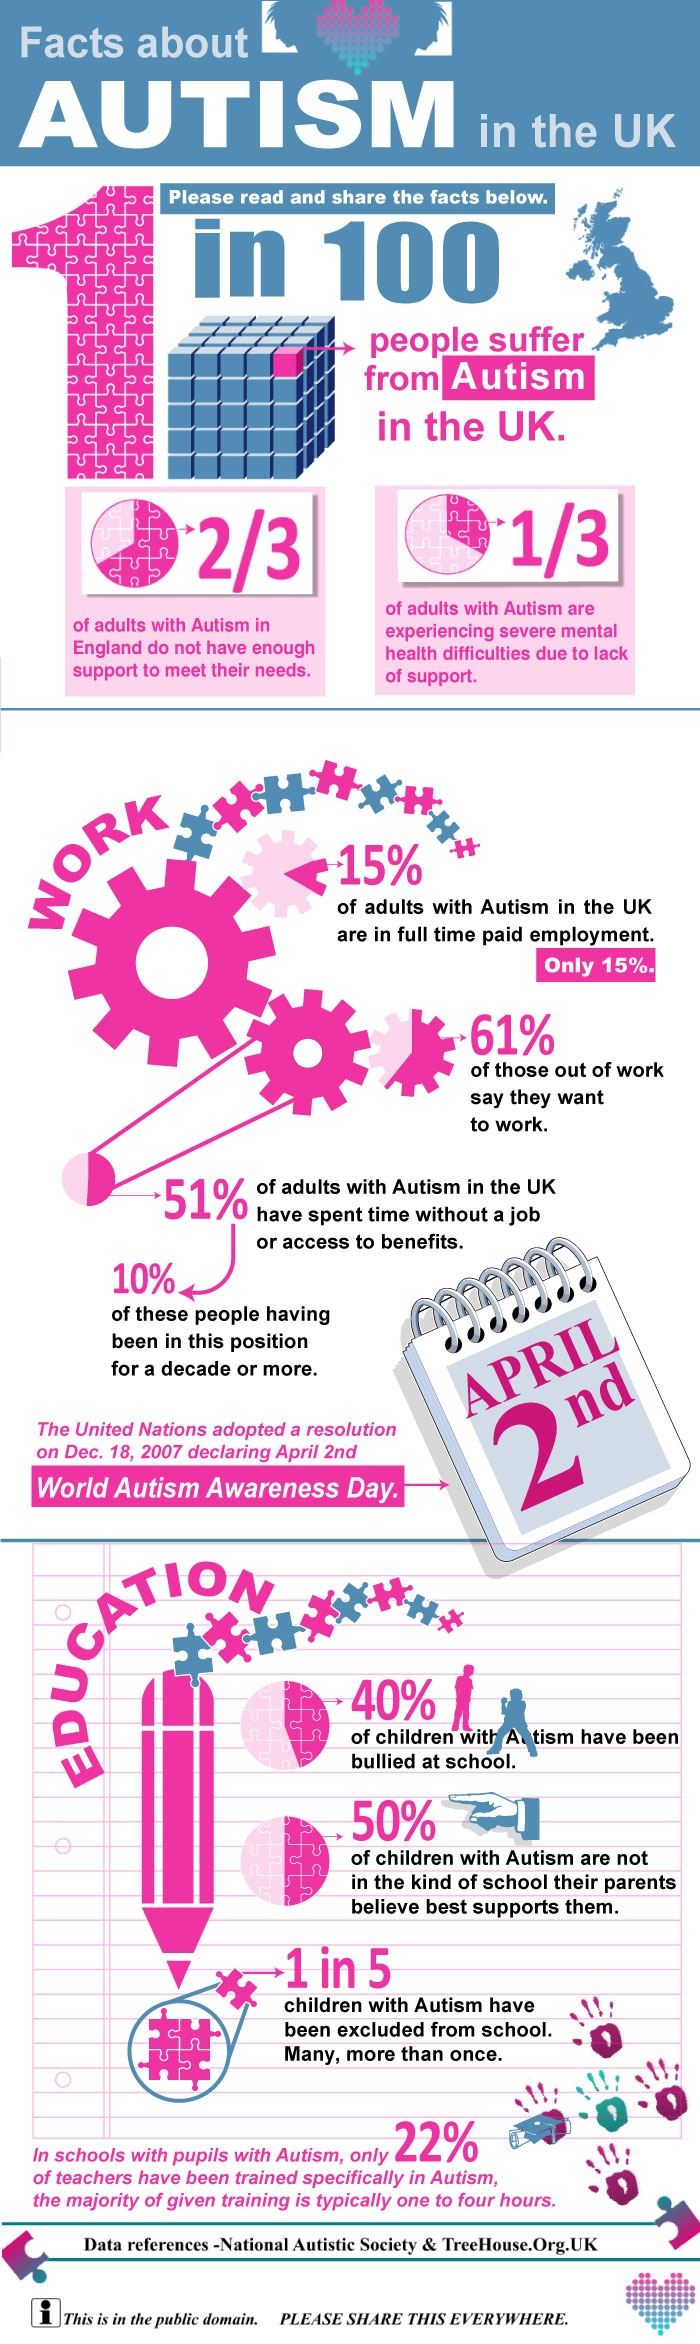 6. Facts about Autism in UK